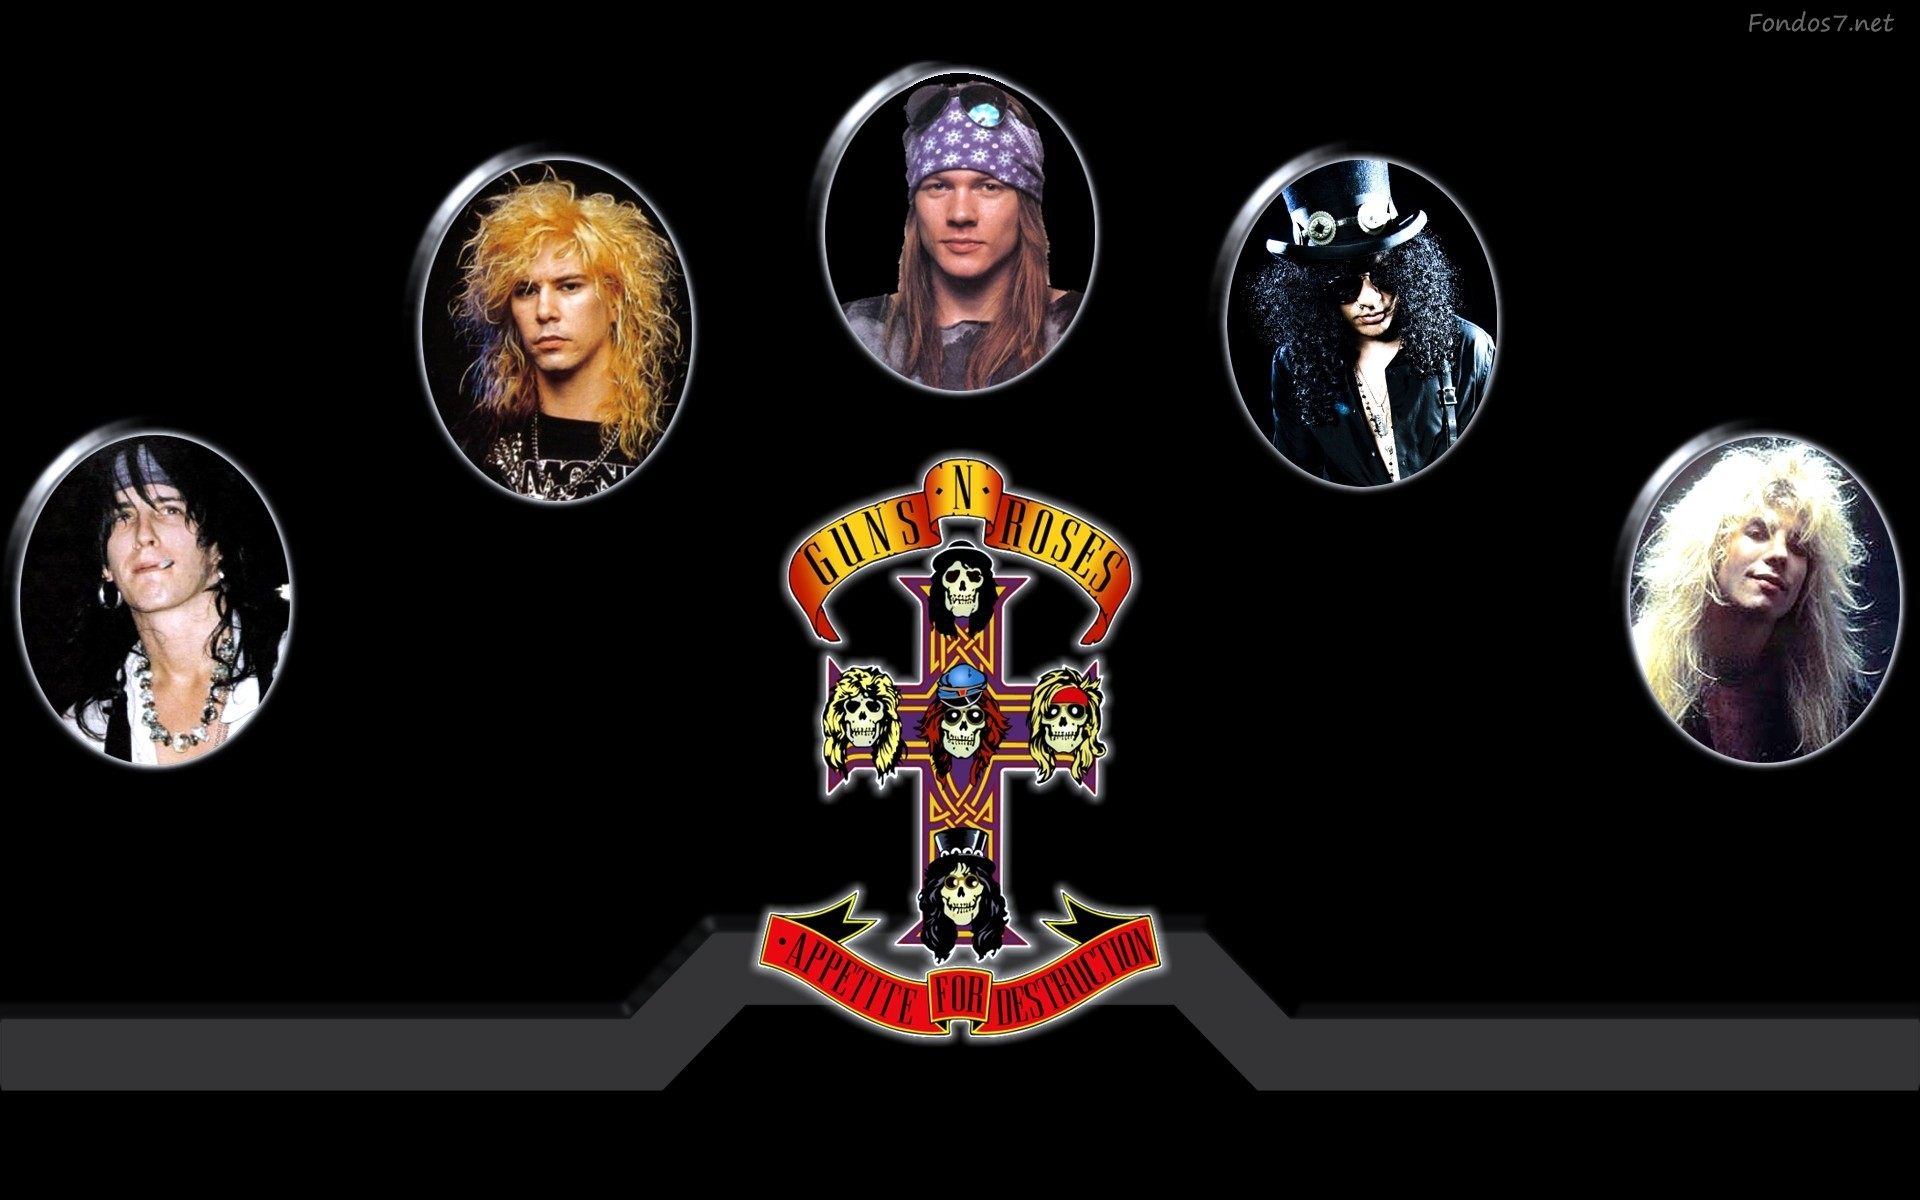 Appetite for destruction Guns N Roses 1920×1200